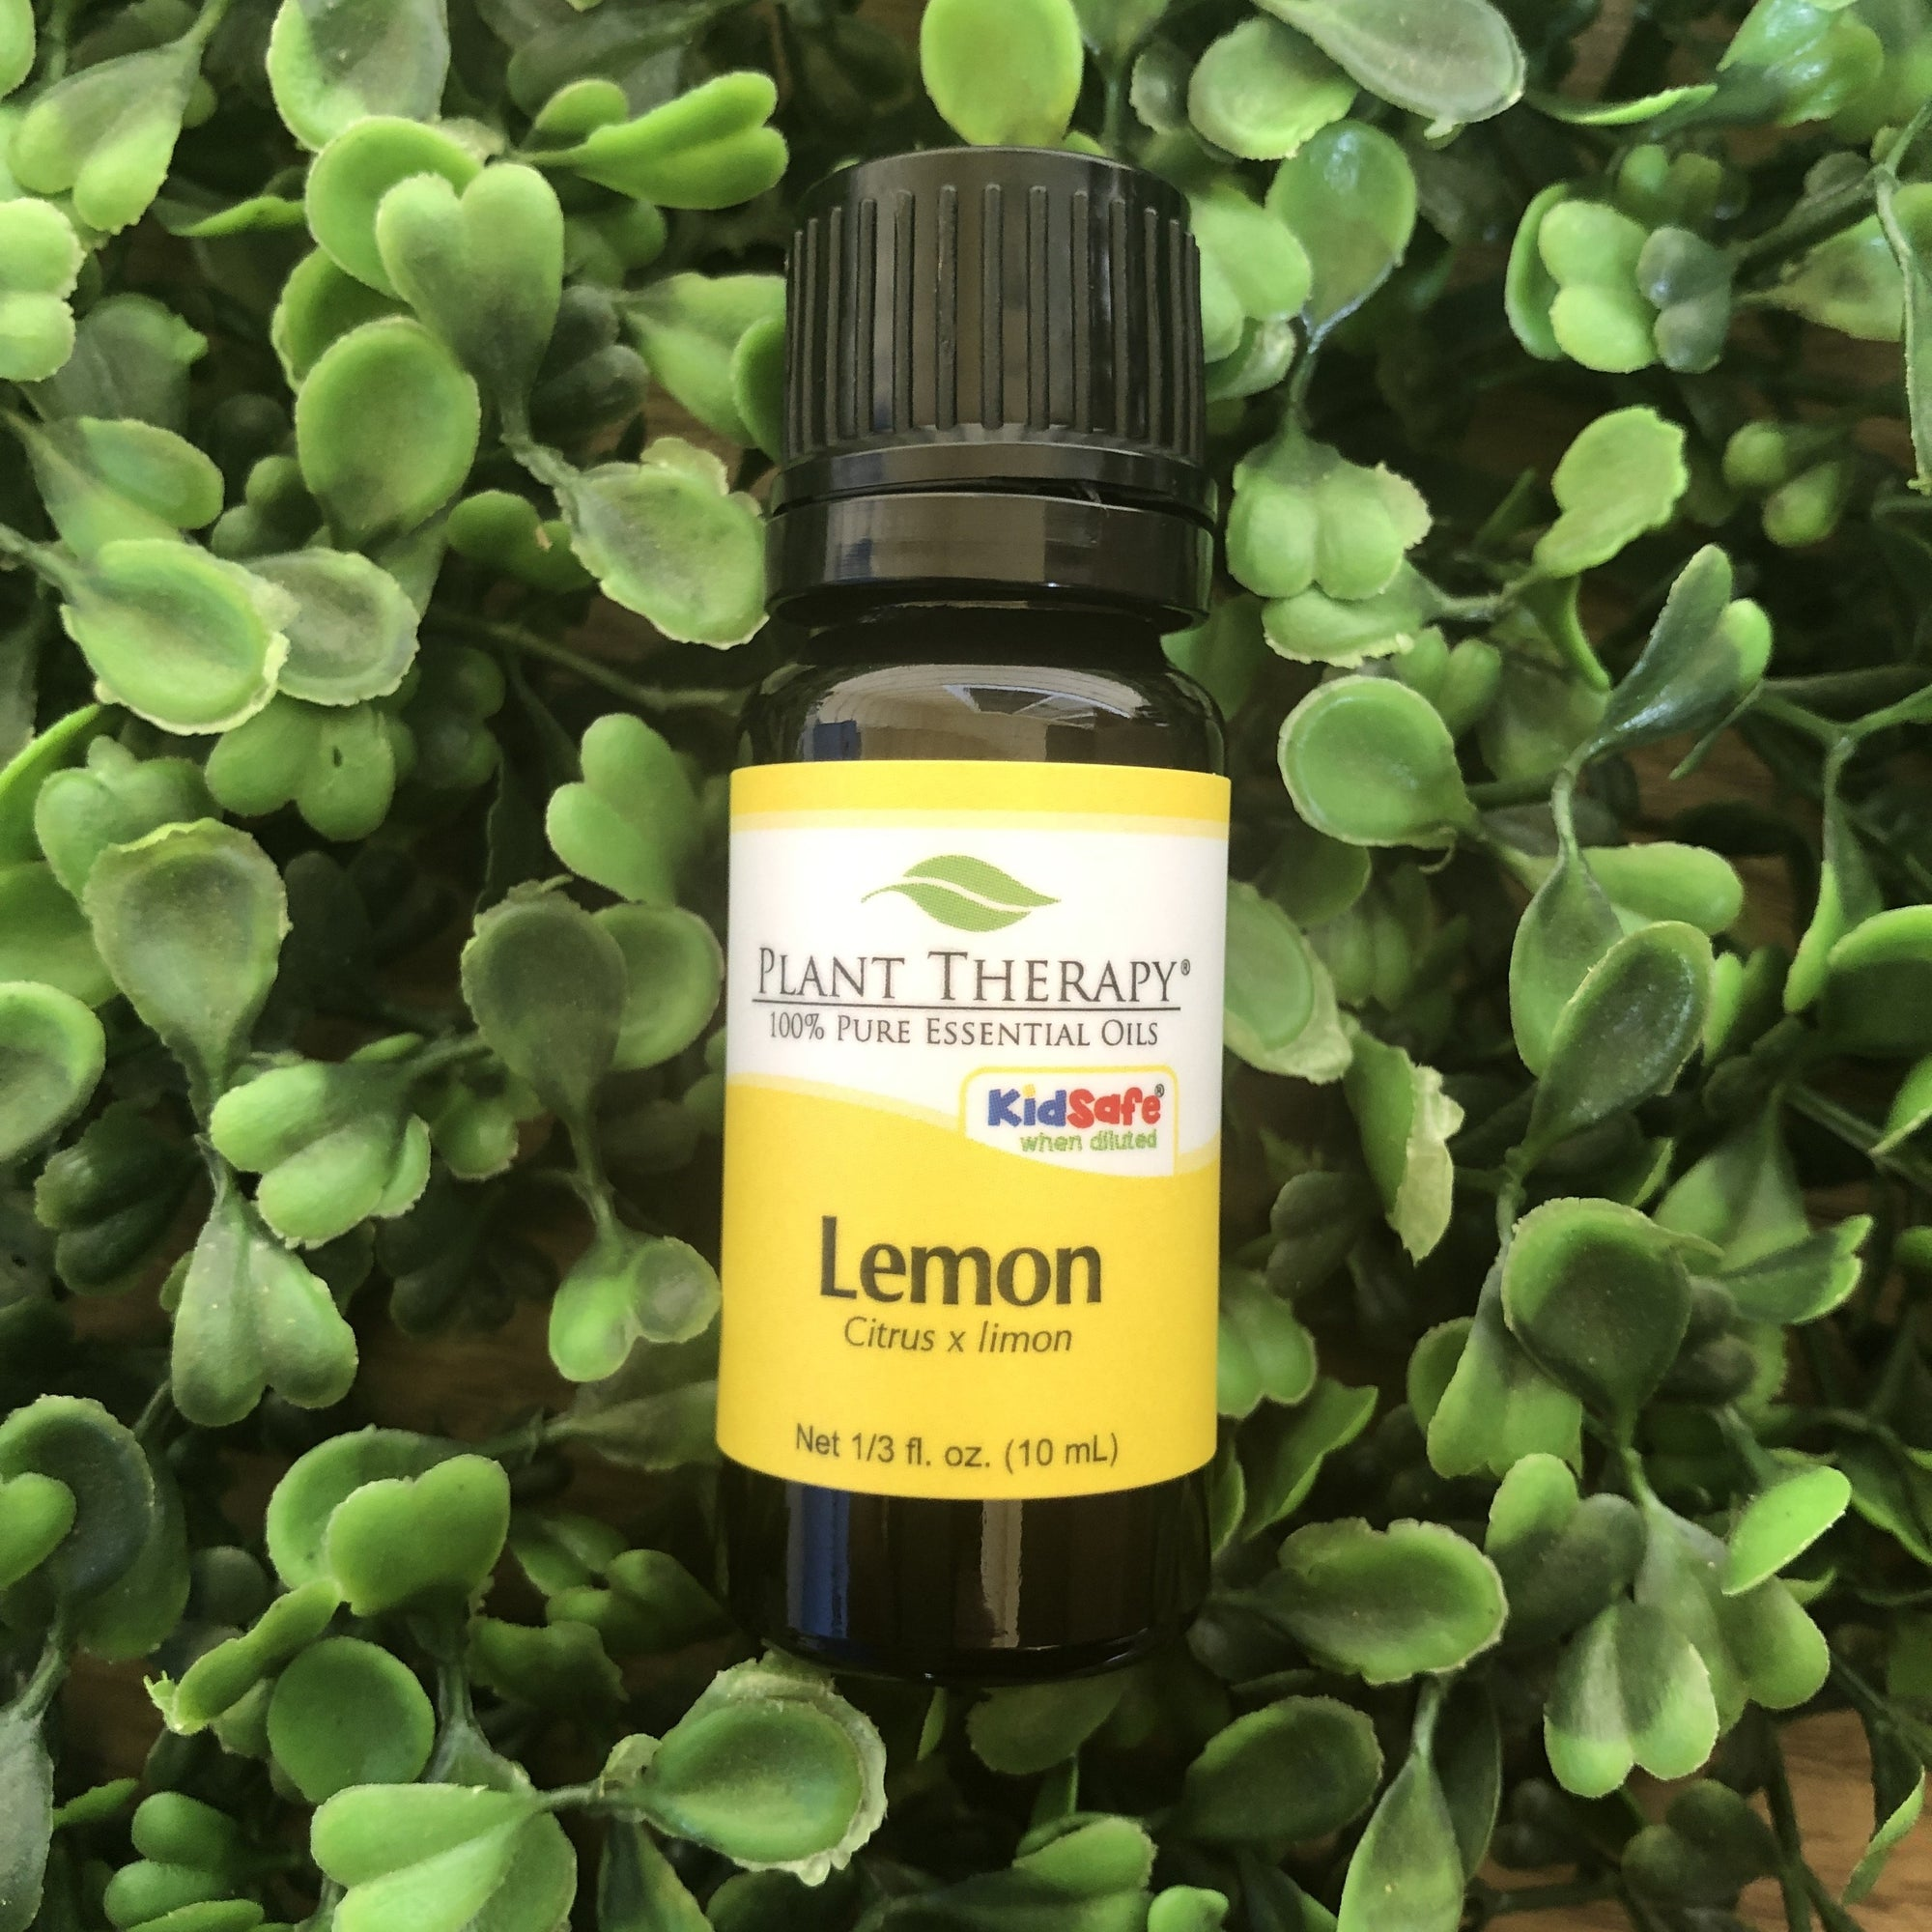 Lemon Steam Distilled Essential Oil - Essential Oil